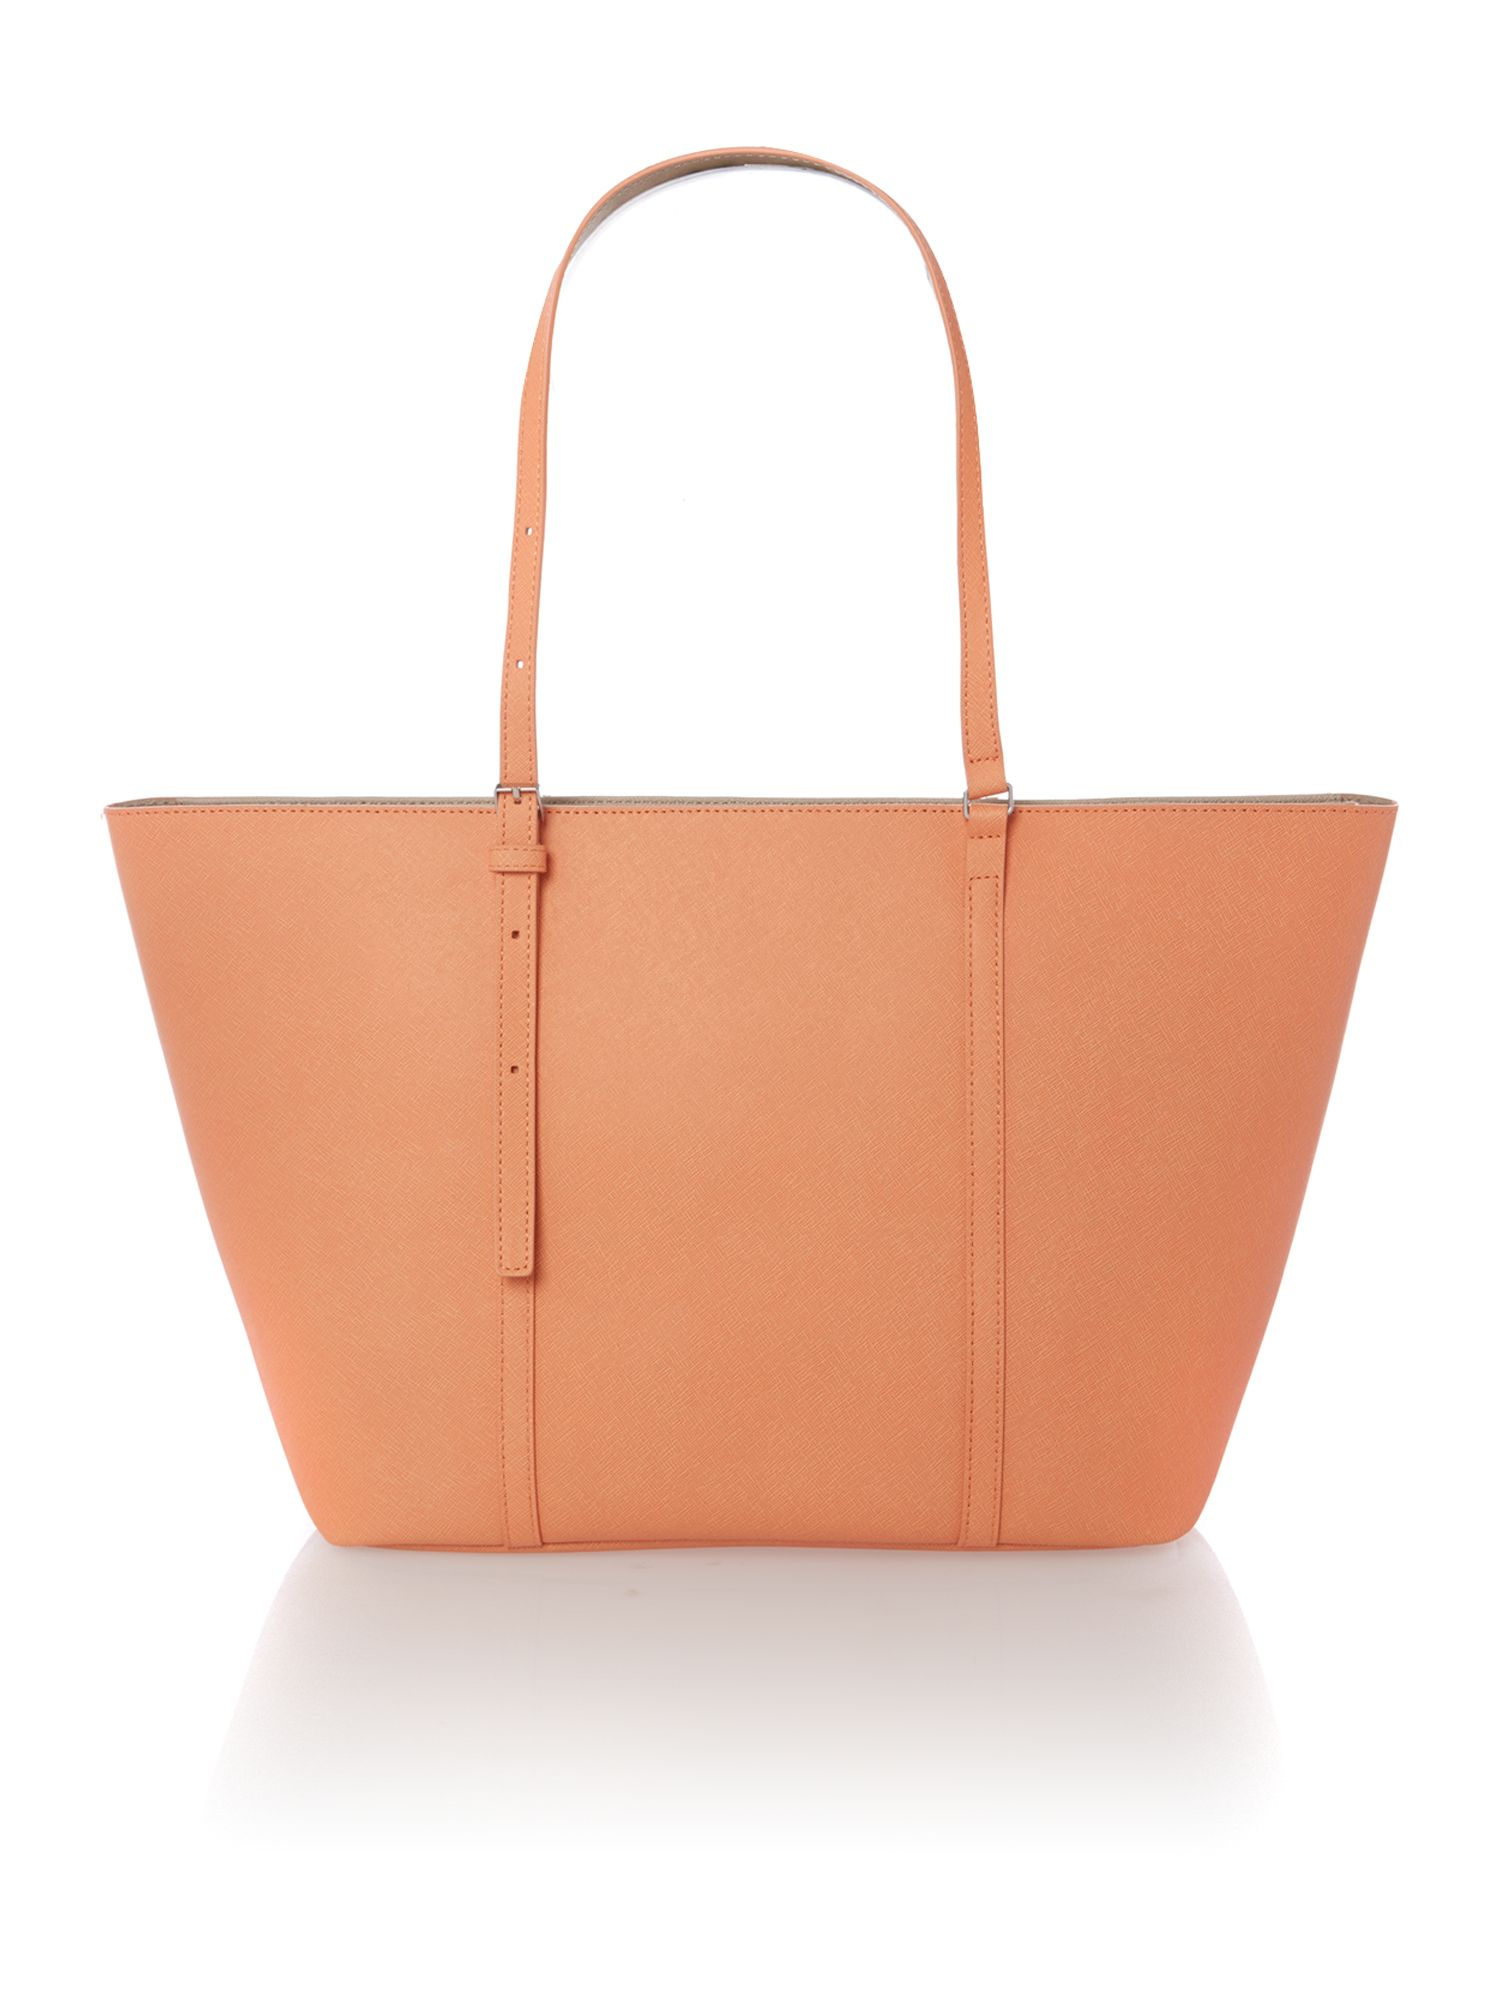 Sofie large coral tote bag